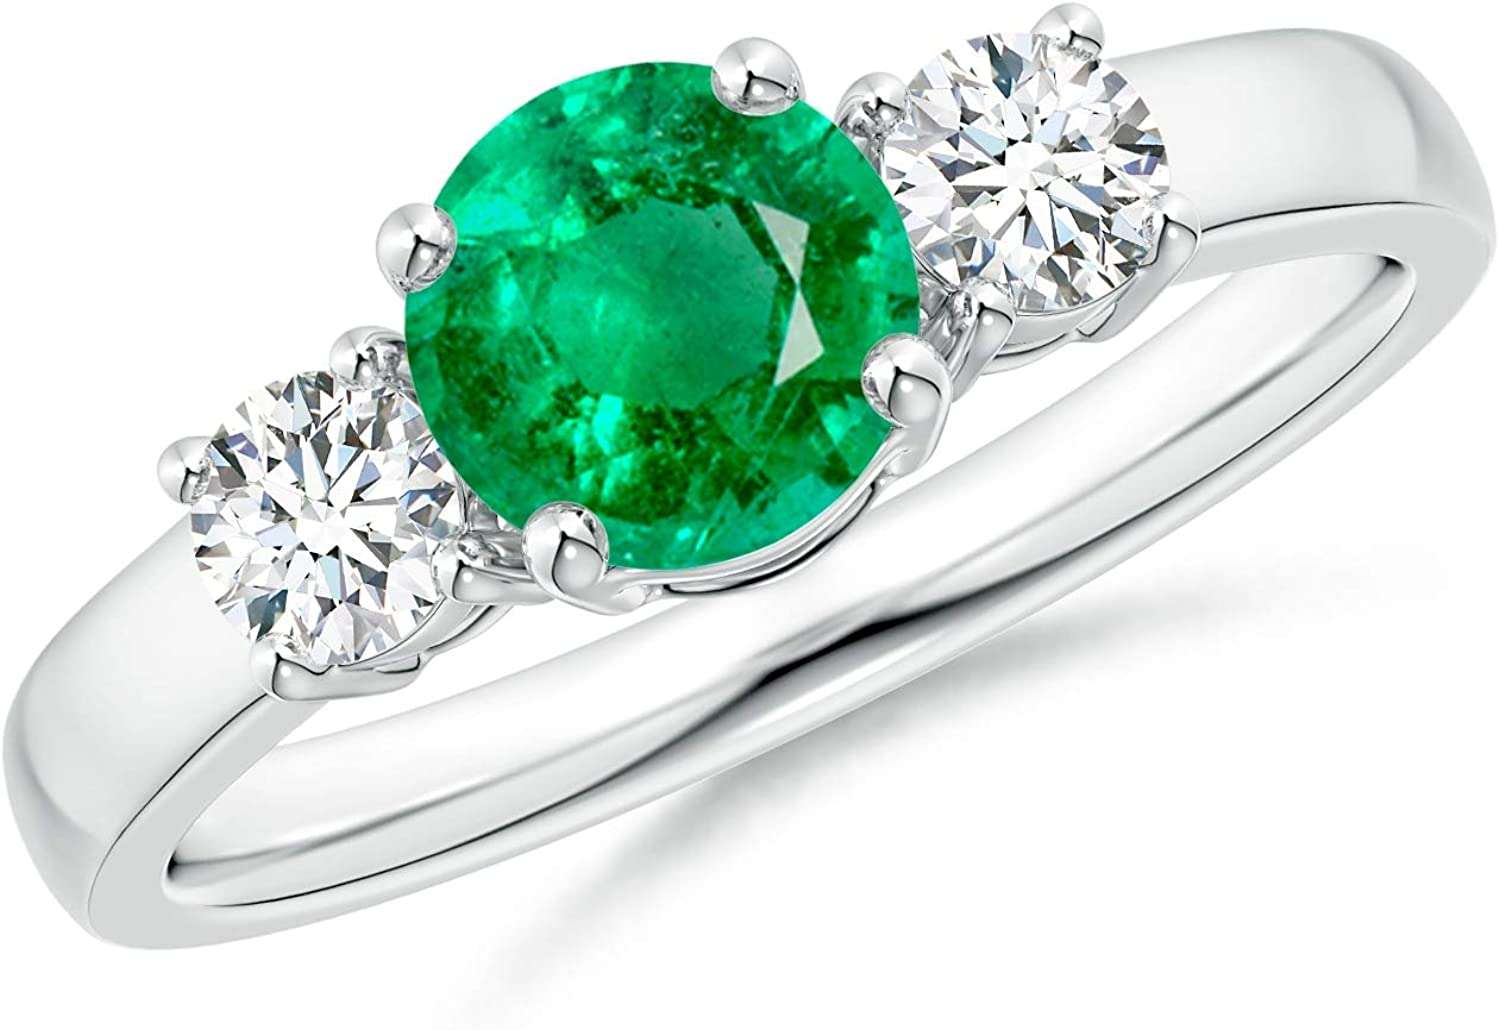 Classic Emerald and Diamond Three Max 78% OFF Engagement 70% OFF Outlet Stone Ring Eme 6mm